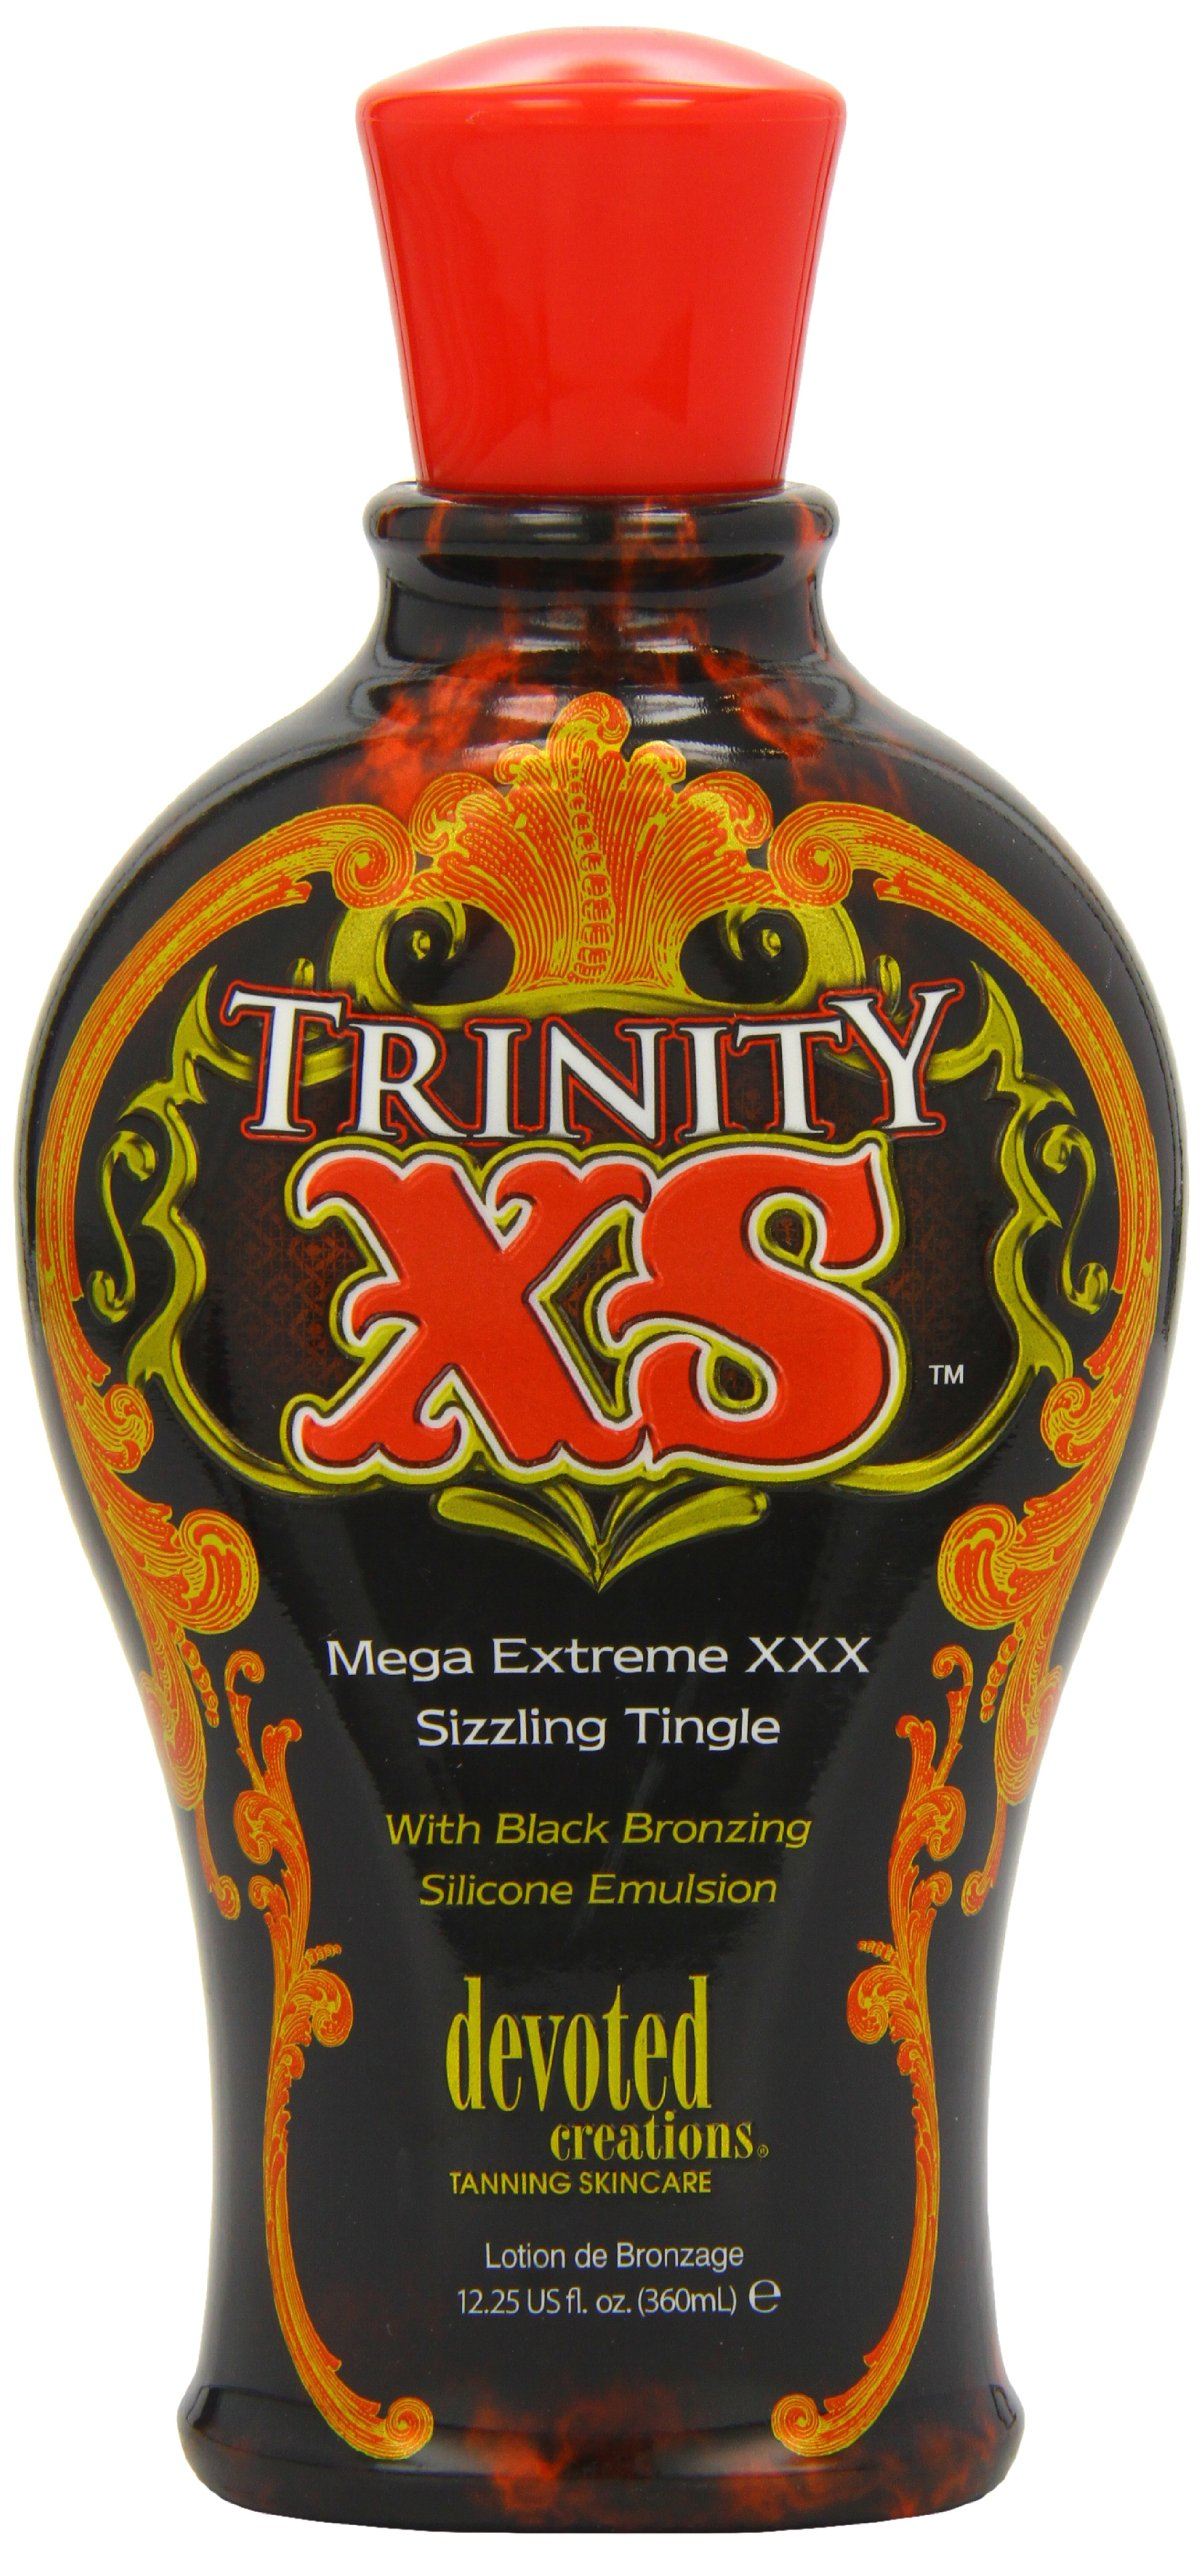 Devoted Creations Trinity XS Mega Extreme XXX Sizzling Tingle Tanning Lotion 12.25 oz. by Devoted Creations